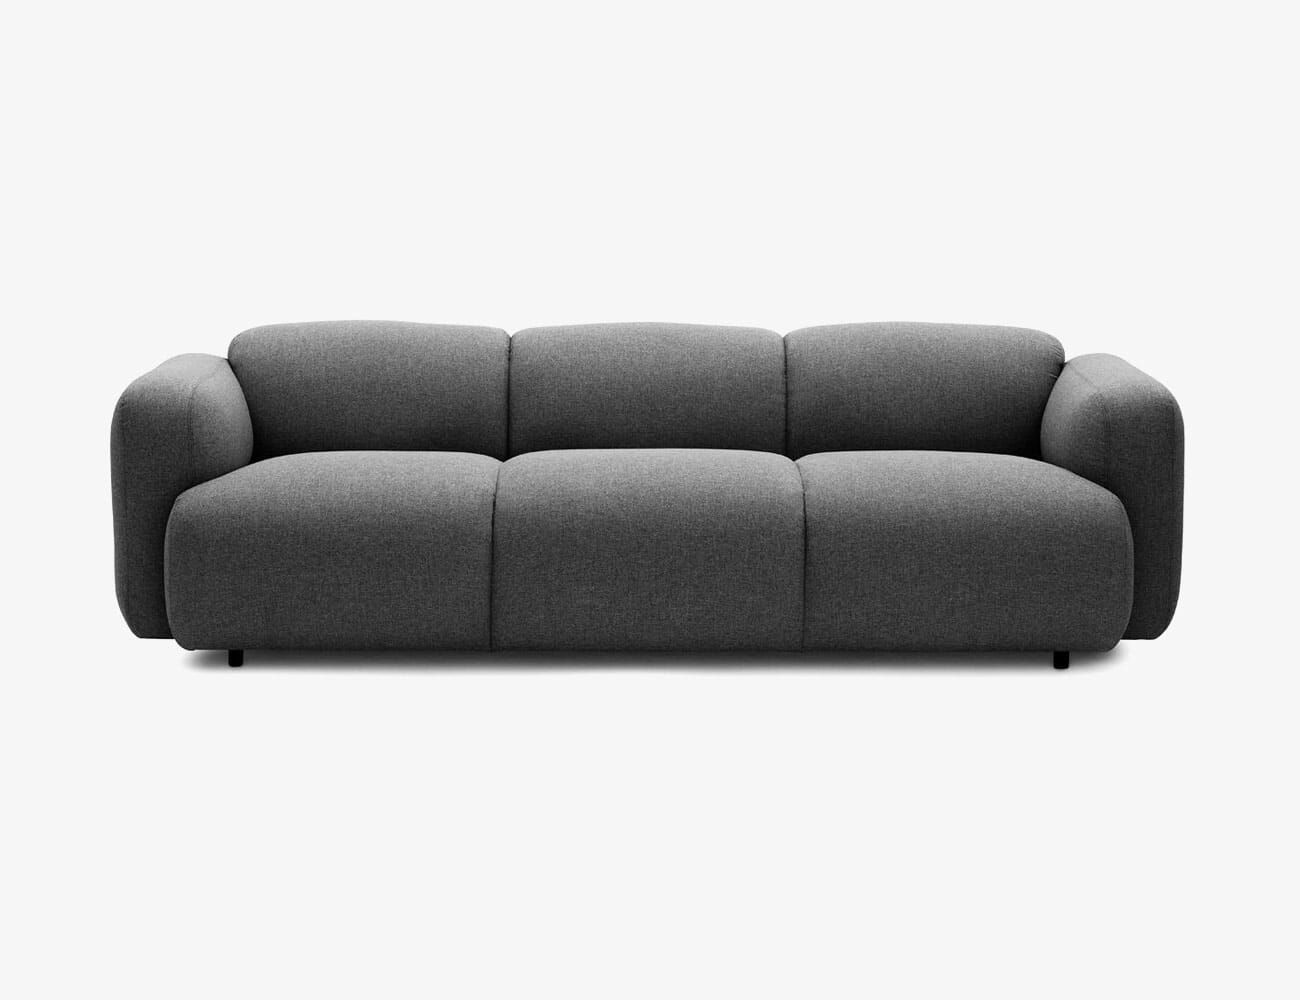 Astonishing The 16 Best Sofas And Couches You Can Buy In 2019 Gear Patrol Pabps2019 Chair Design Images Pabps2019Com